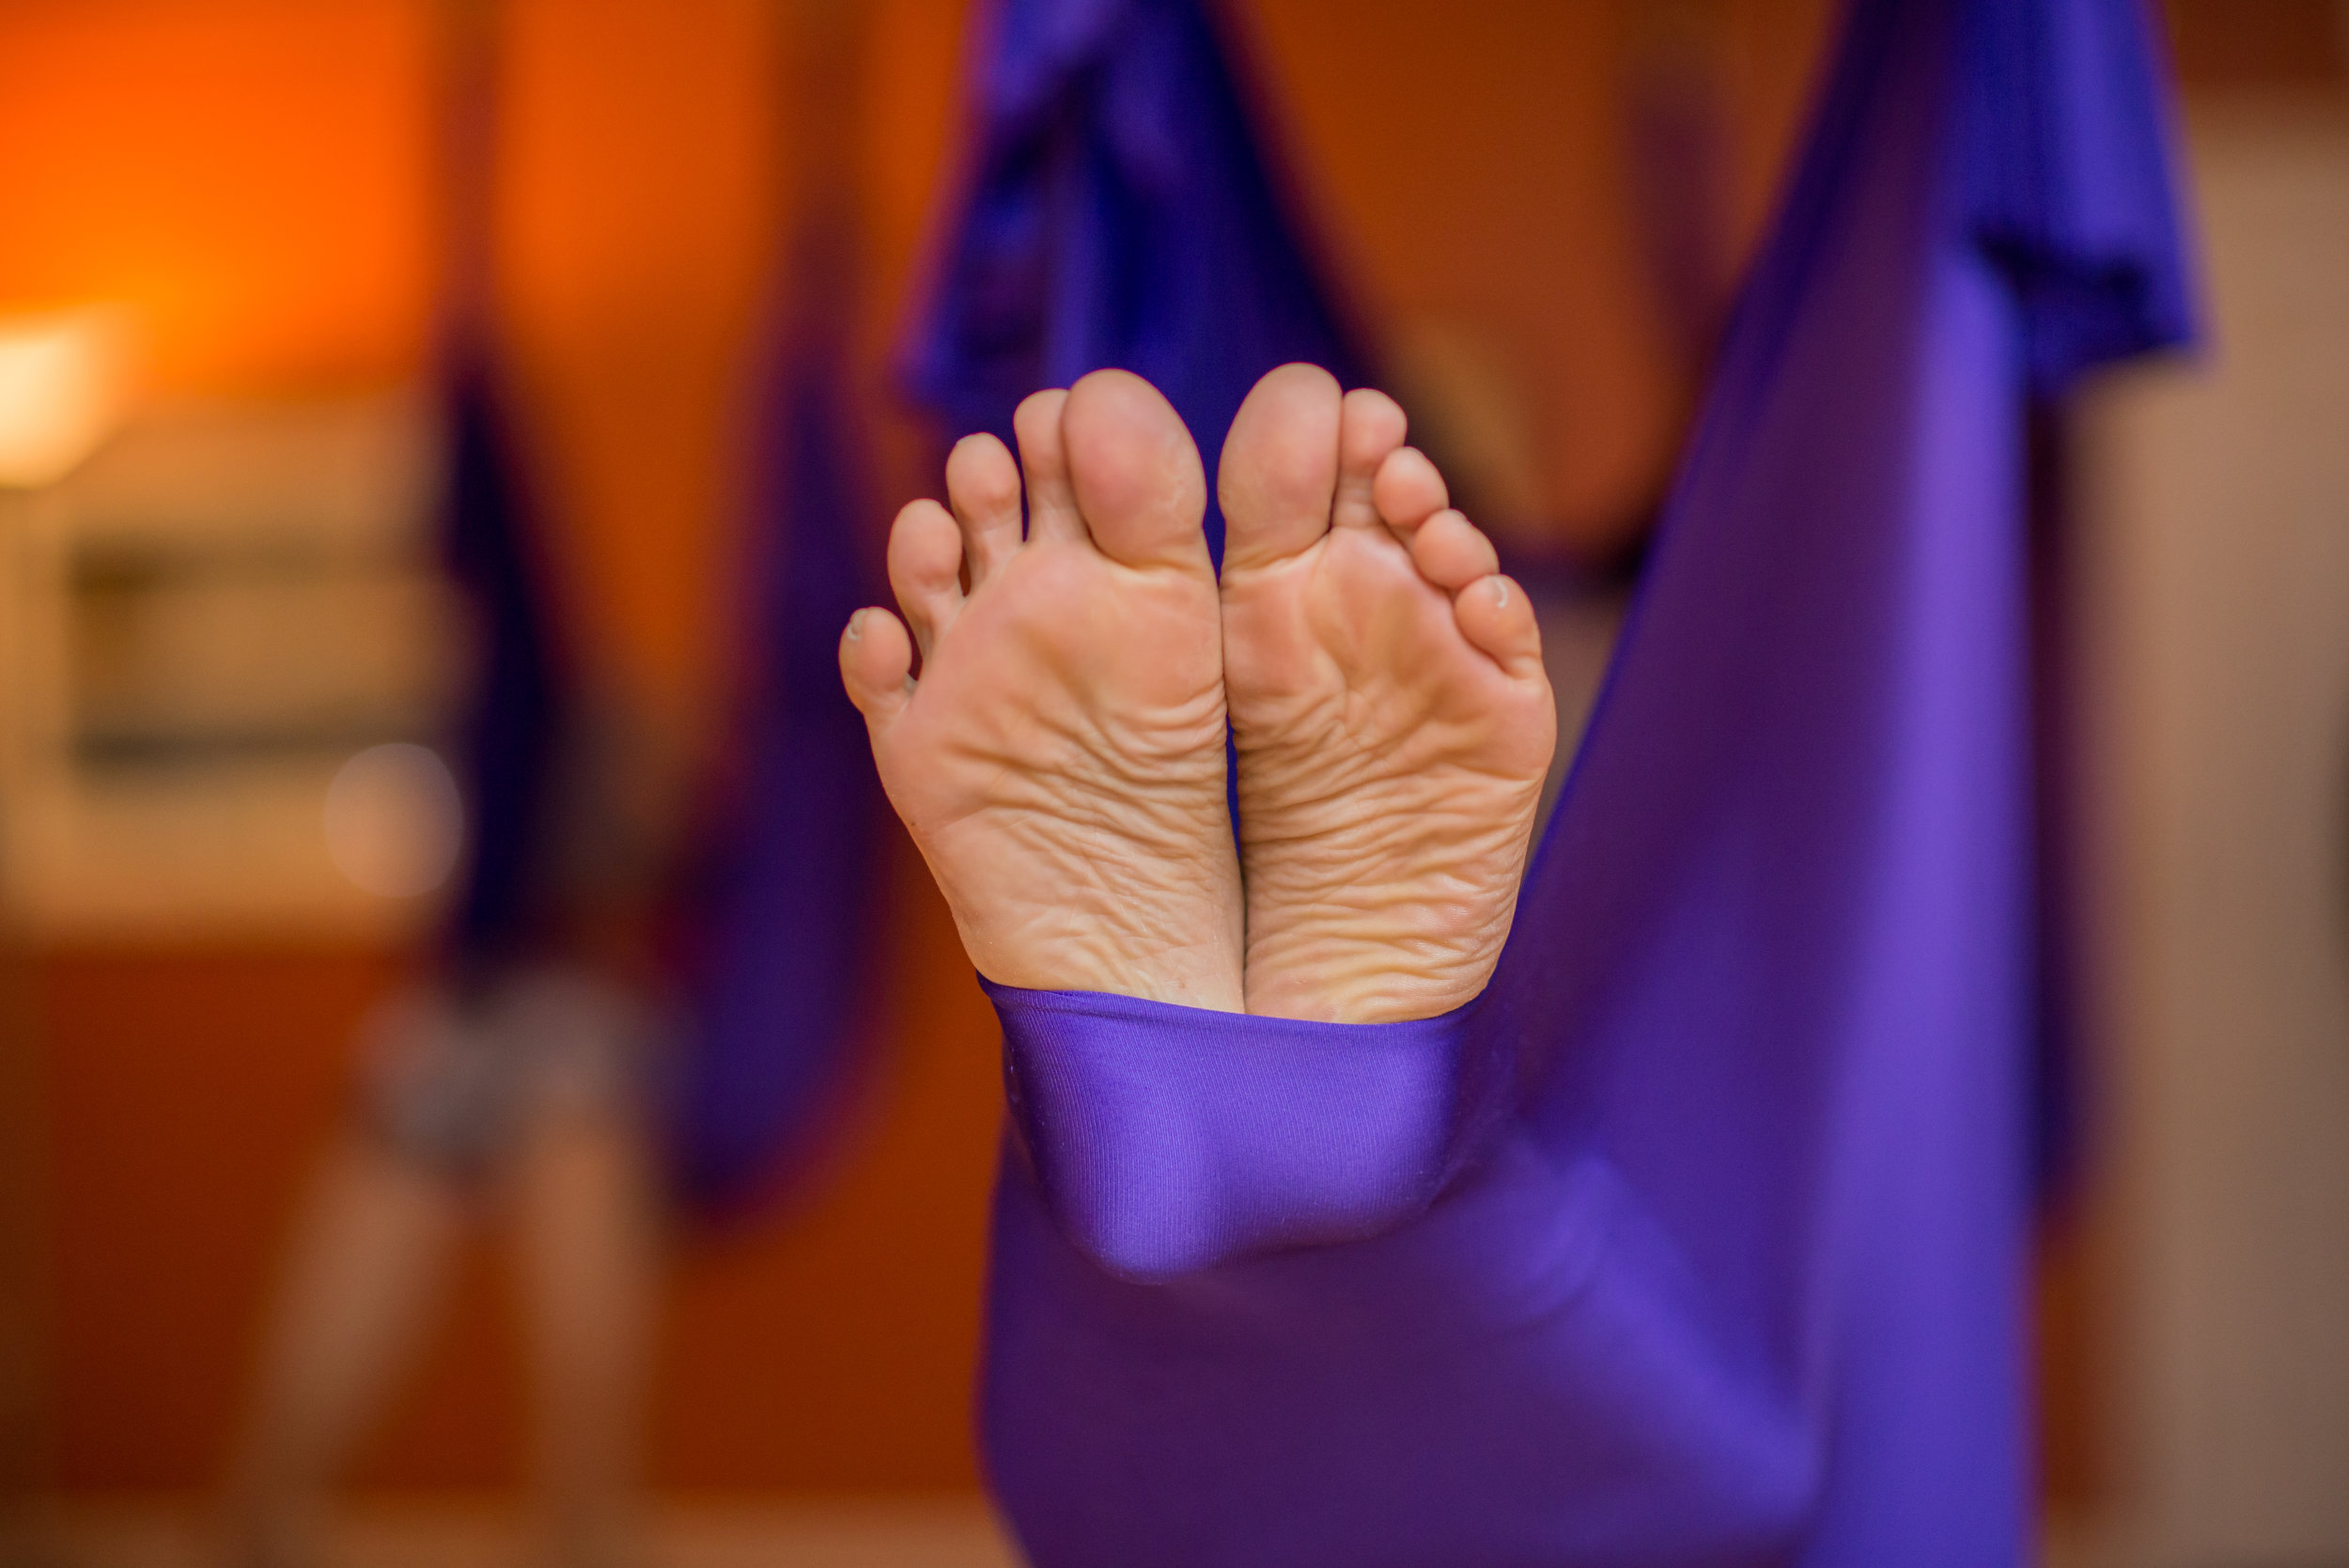 Aerial yoga   In addition to public aerial yoga classes, we are now offering Private or Group Aerial Yoga.  1:1 Sessions same pricing as Private Yoga     |   Groups up to 8 people - 60 or 75 min - $125/$150    |    9-15 people - $150/$175